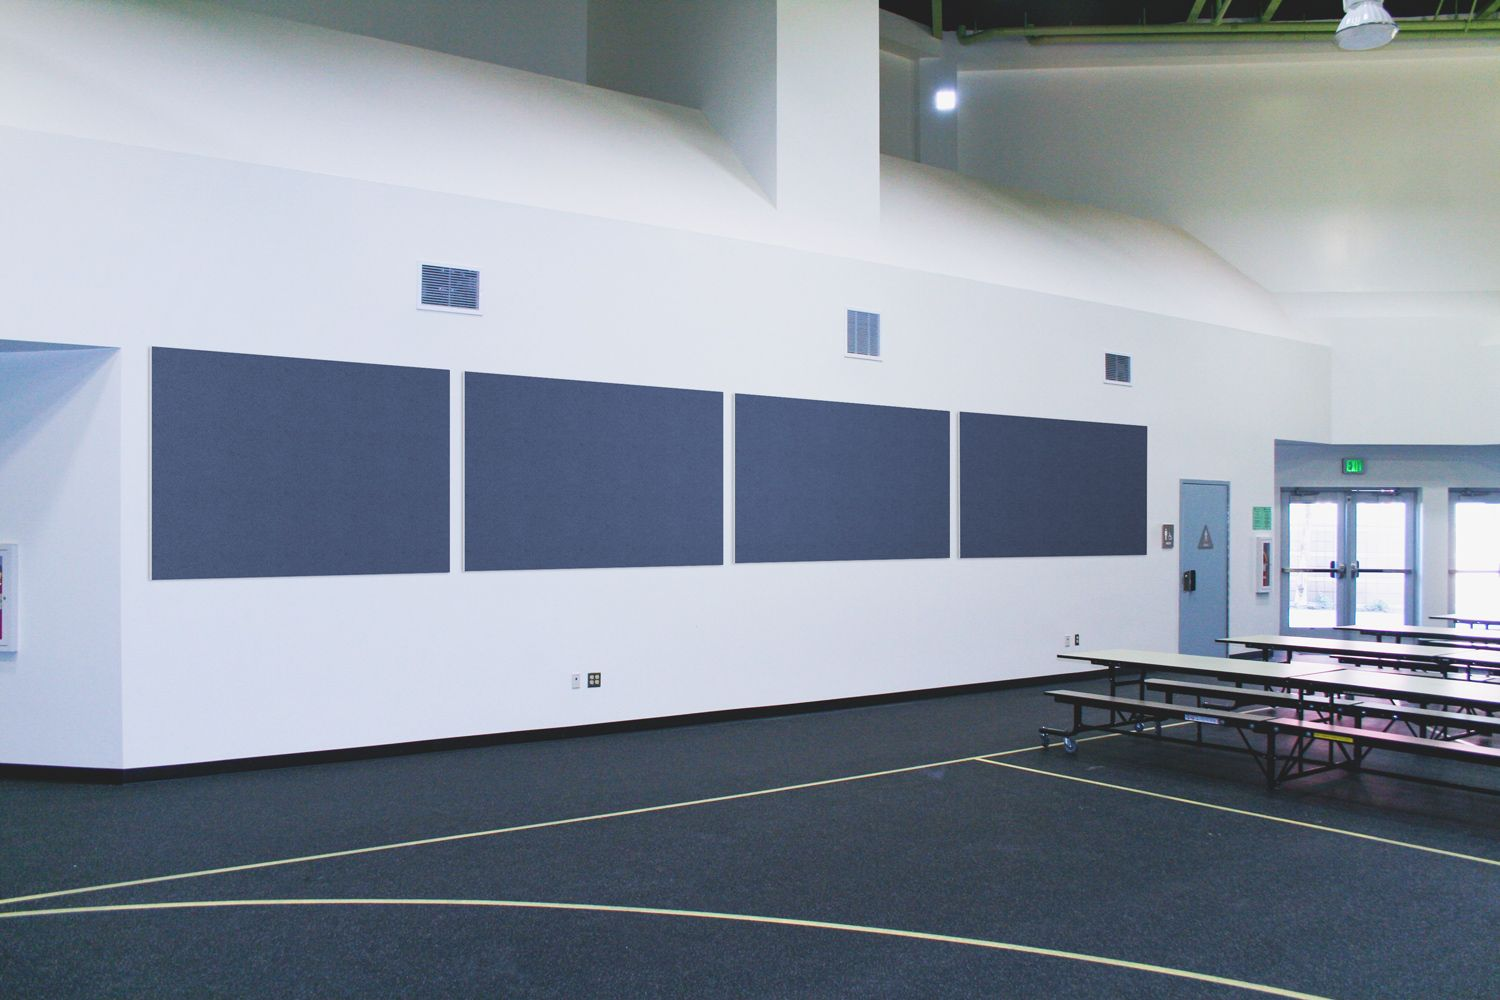 laminated panels in a gym